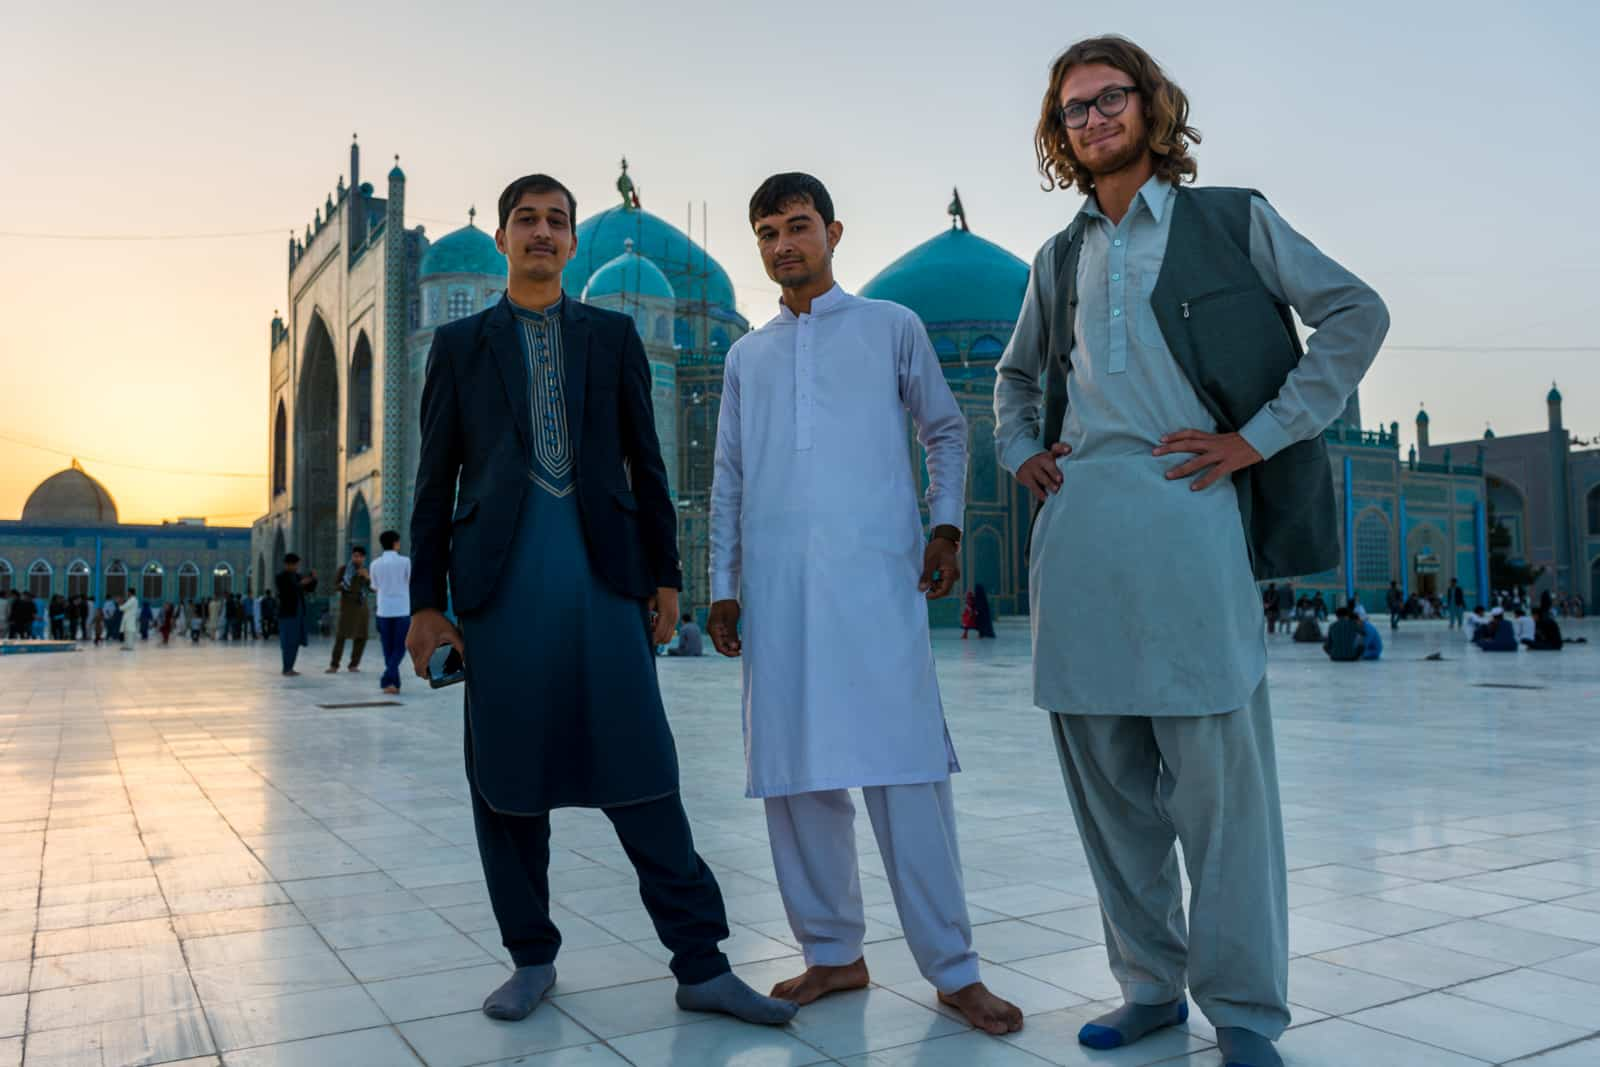 Photos of Mazar-i-Sharif, Afghanistan